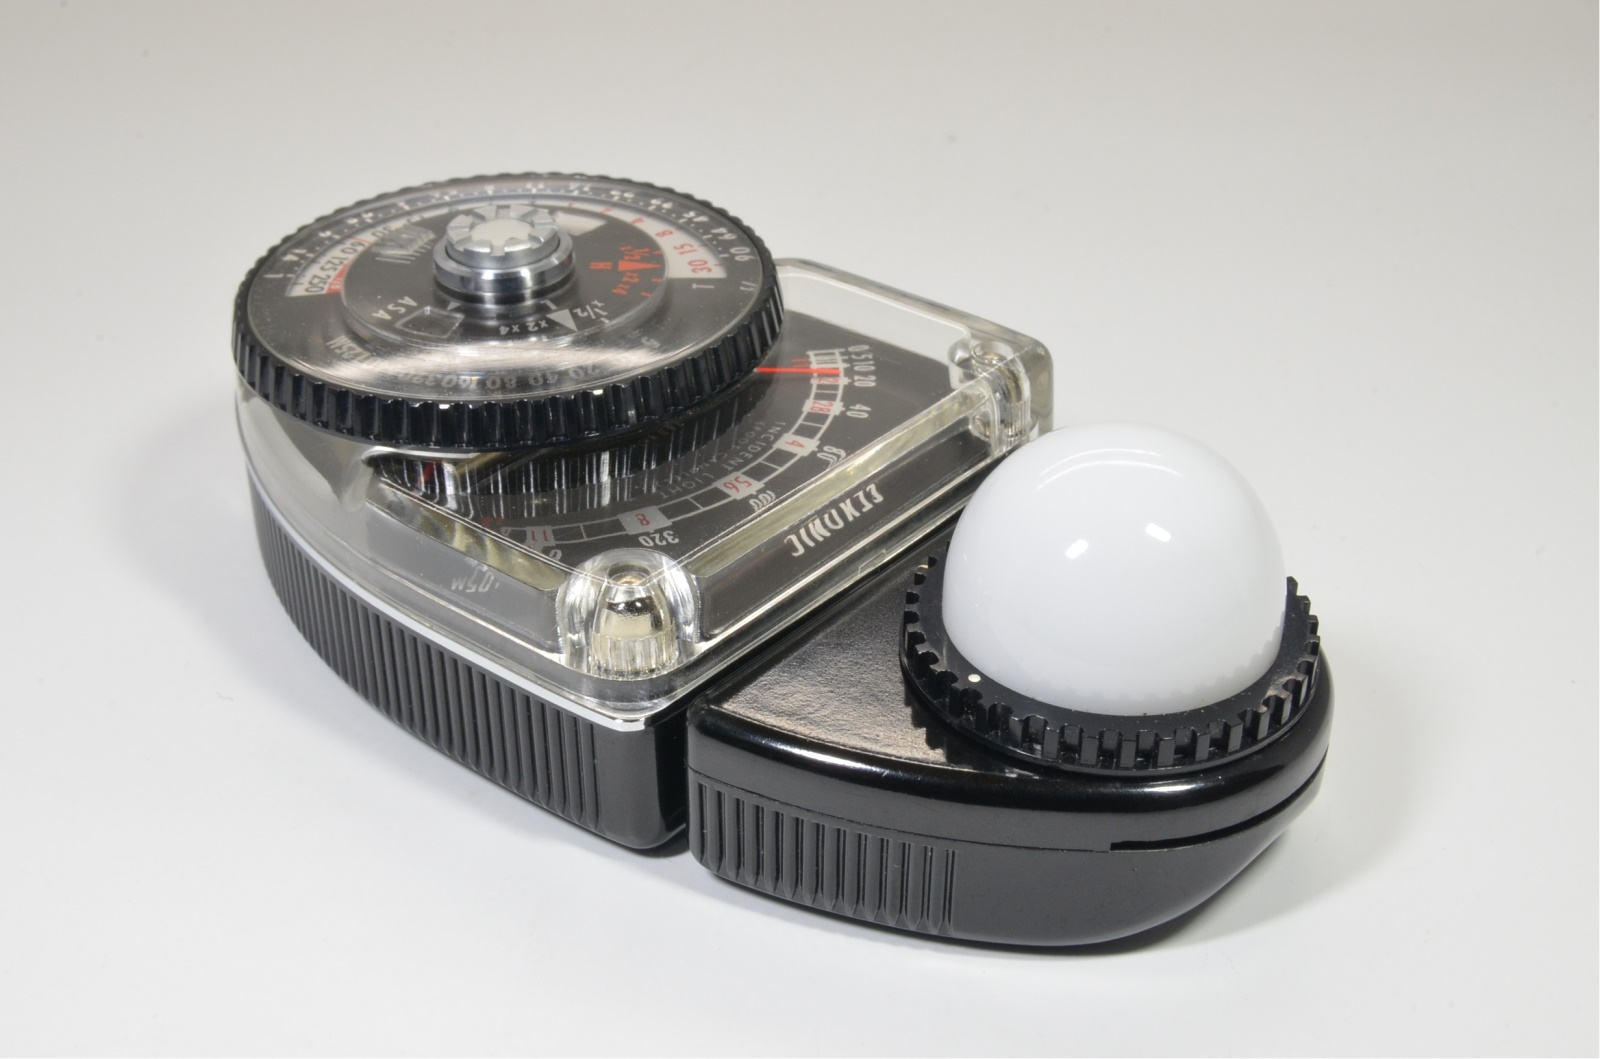 sekonic studio deluxe l-398 exposure light meter from japan